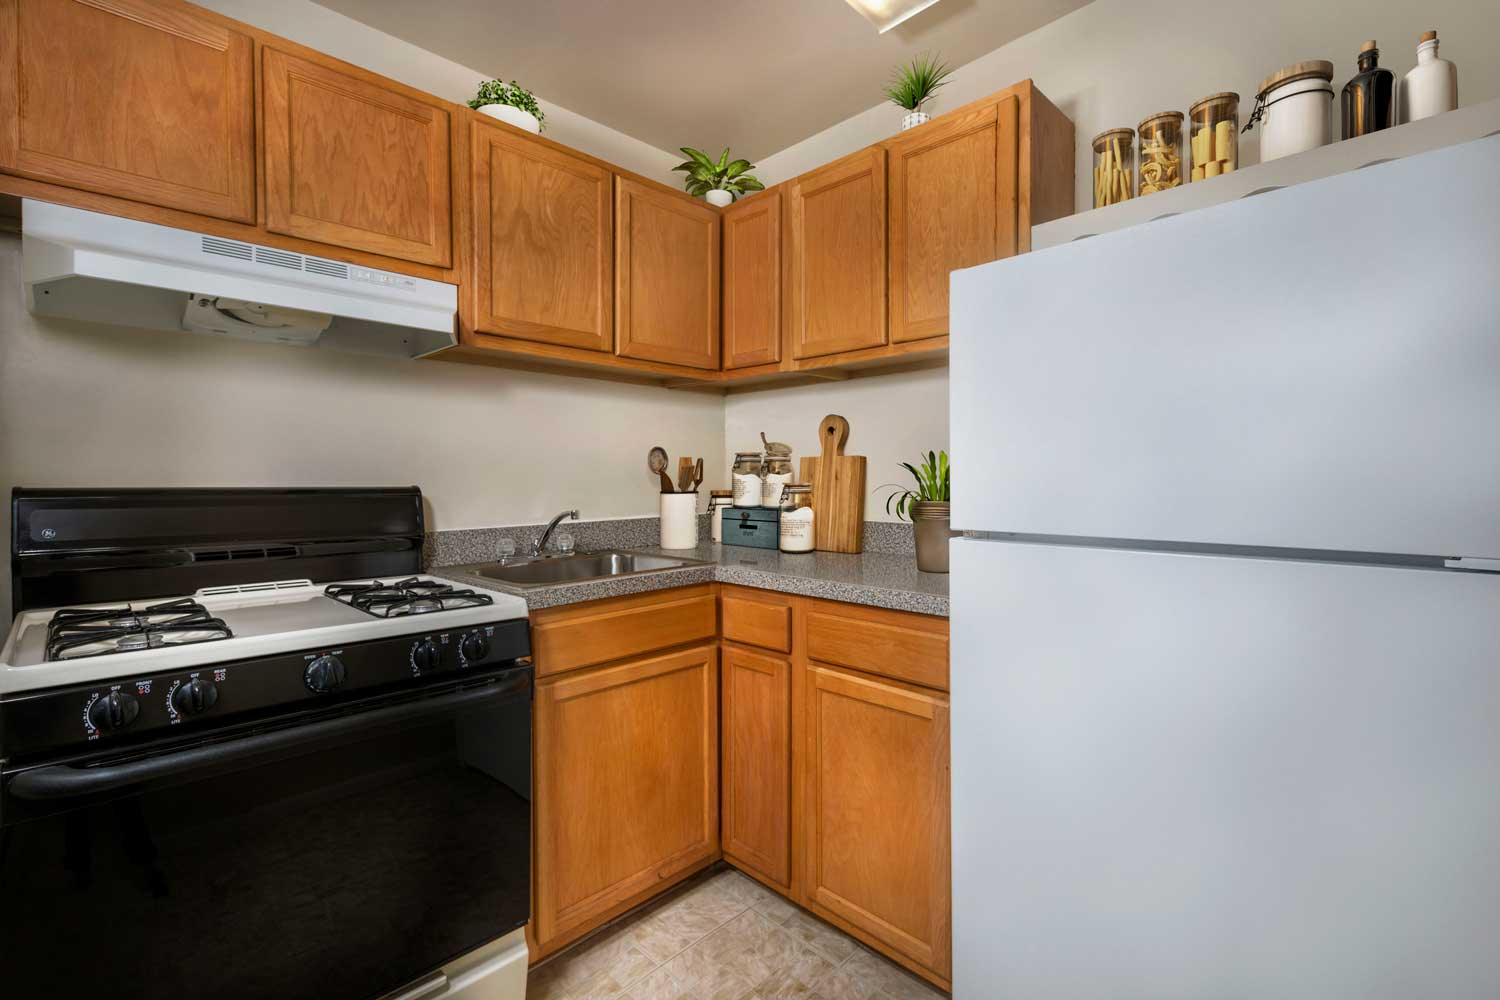 Kitchen with gas range at Top of the Hill Apartments in Temple Hills, MD